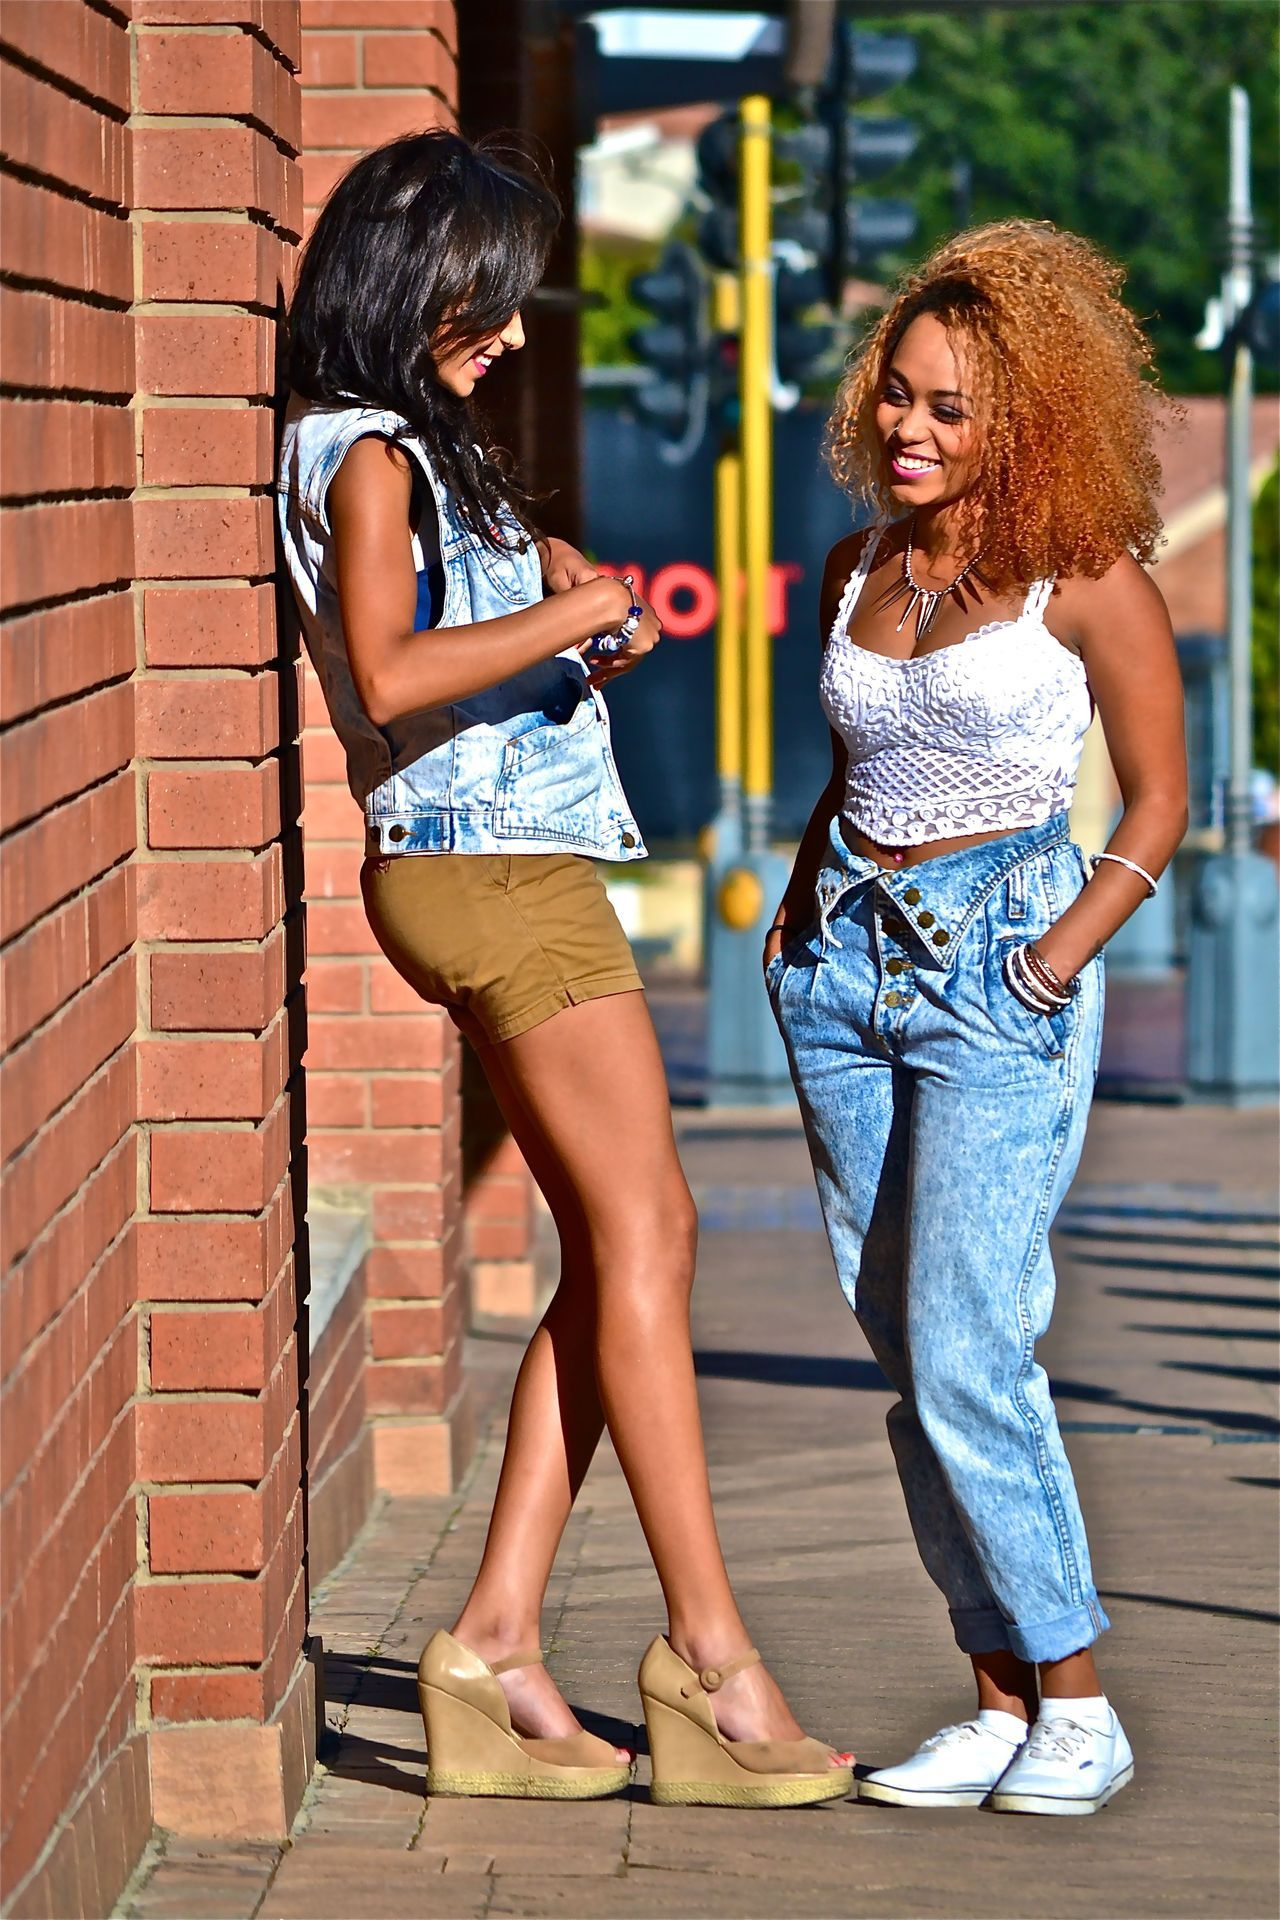 SOUTH AFRICAN STREET STYLE | SISTER ACT Here are some photographs I took months ago, when it was still warm. You might recognize both these individuals. On the left Nicole and on the right, her sister, Kay. They both have incredible taste in clothes and have awesome personalties to boot. Enjoy the photos, there's more looks from this sister act coming soon… Photographed by: The Expressionist